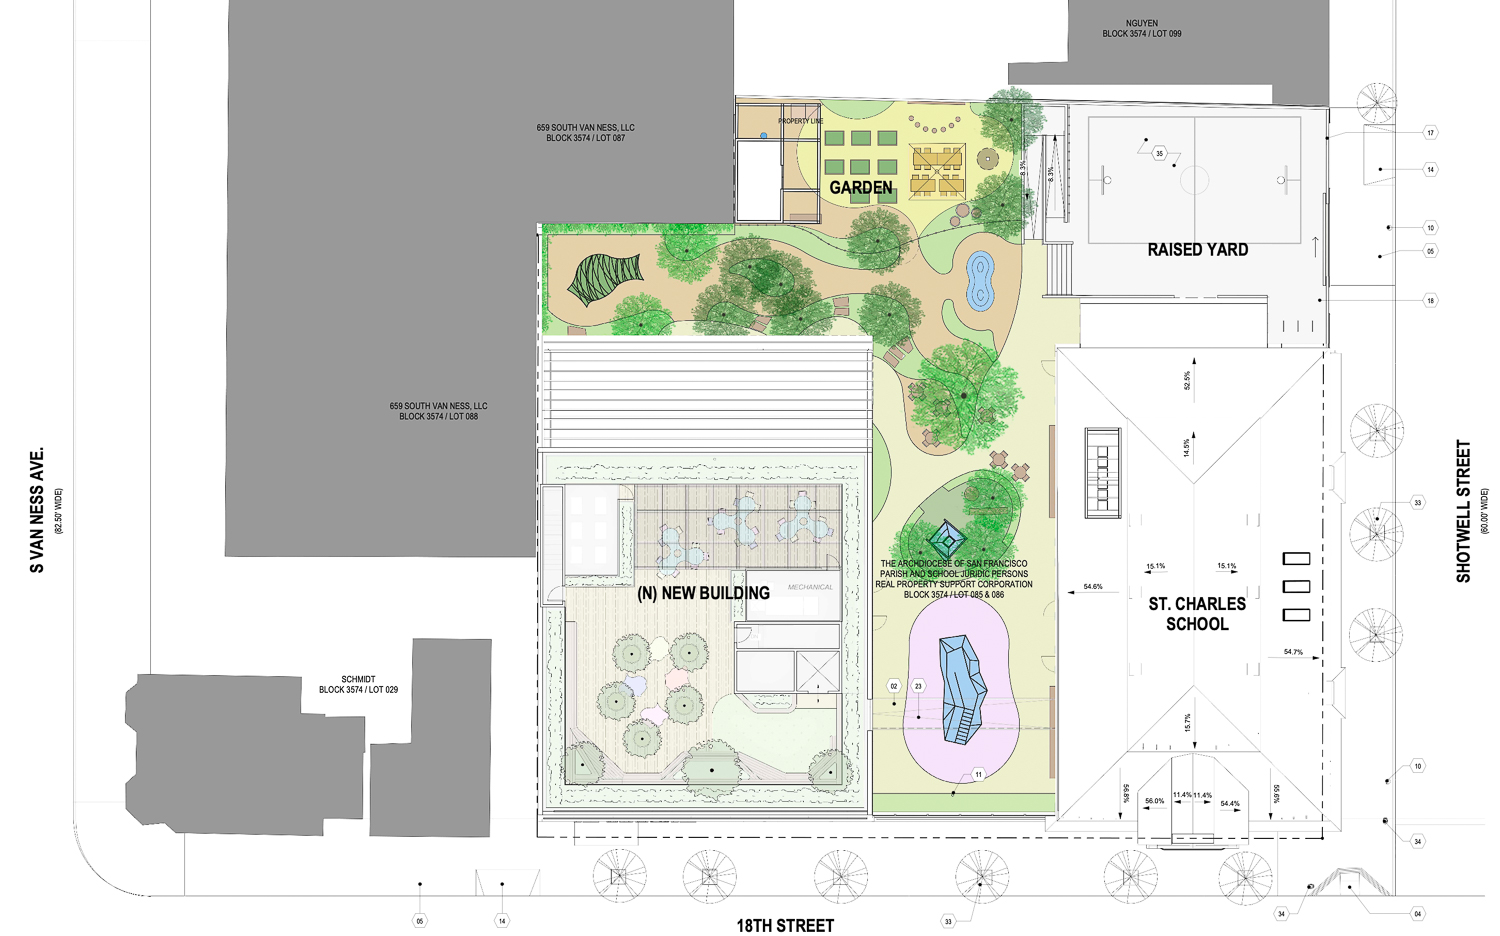 La Scuola site plan with 3250 and 3270 18th Street, by Perkins&Will and ZPZ Partners